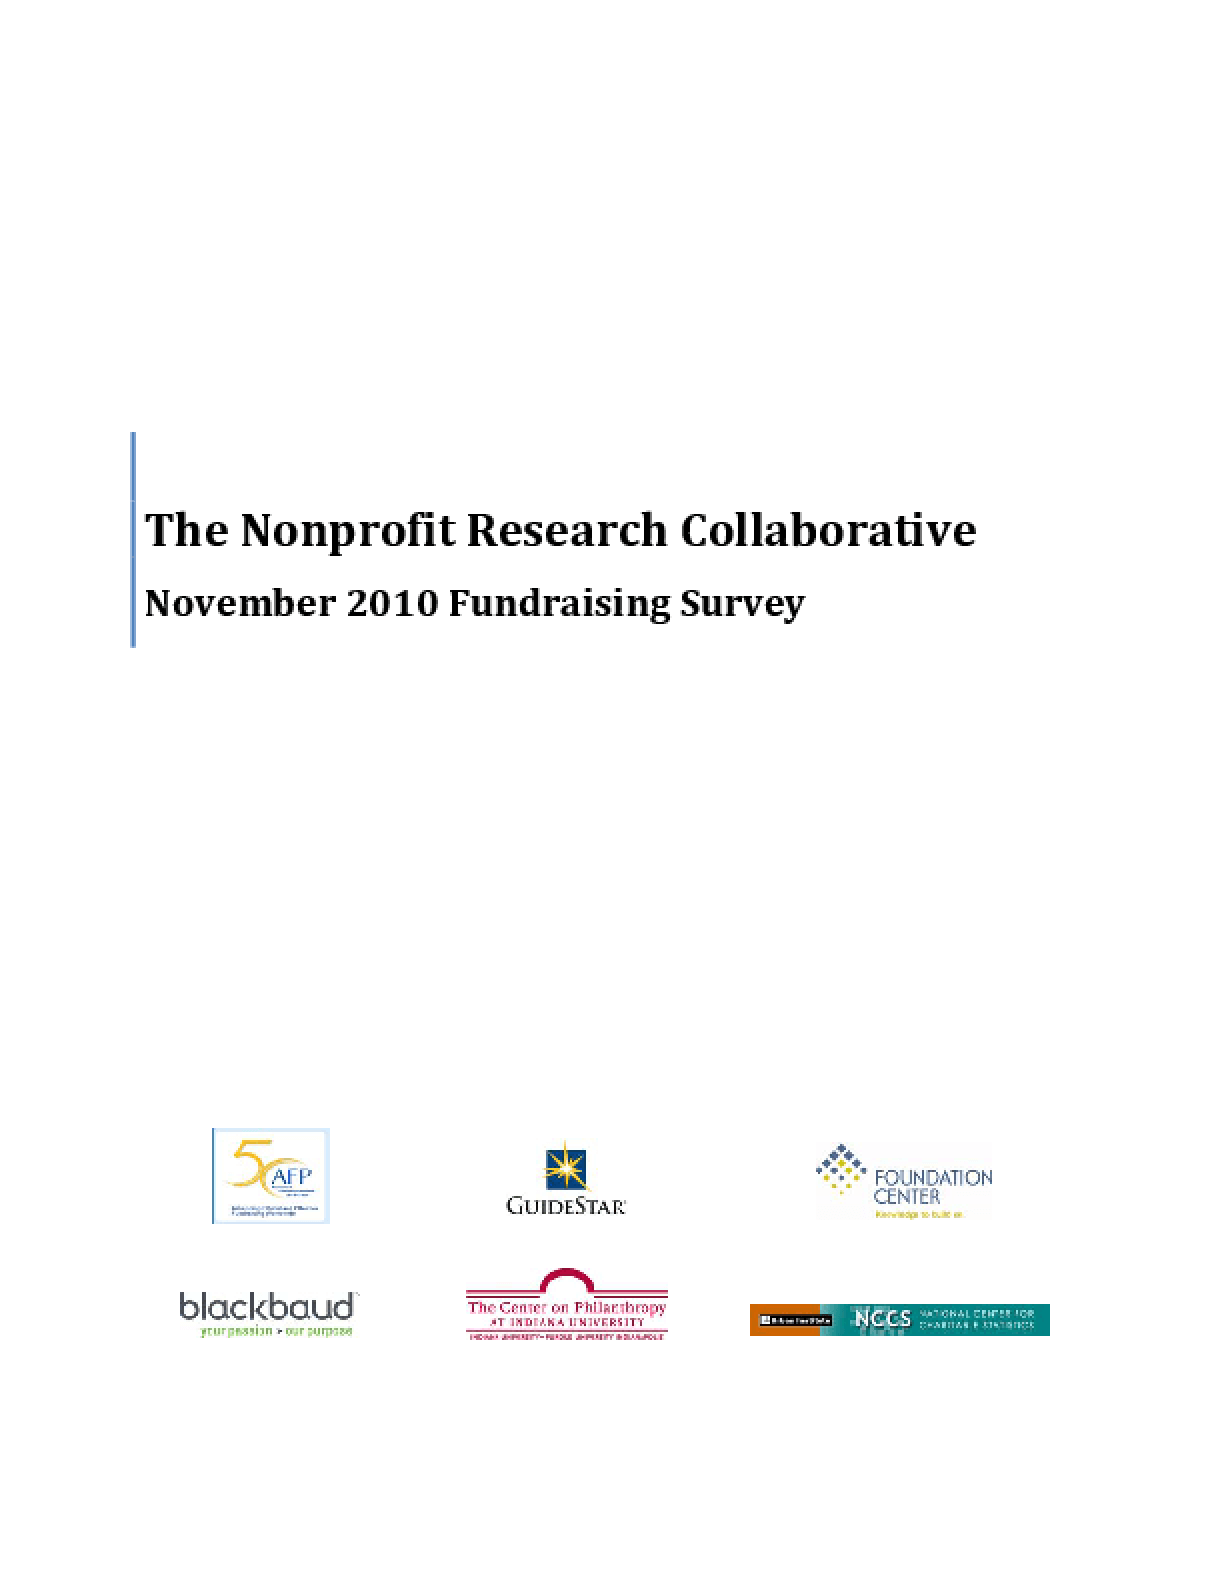 The Nonprofit Fundraising Survey: November 2010